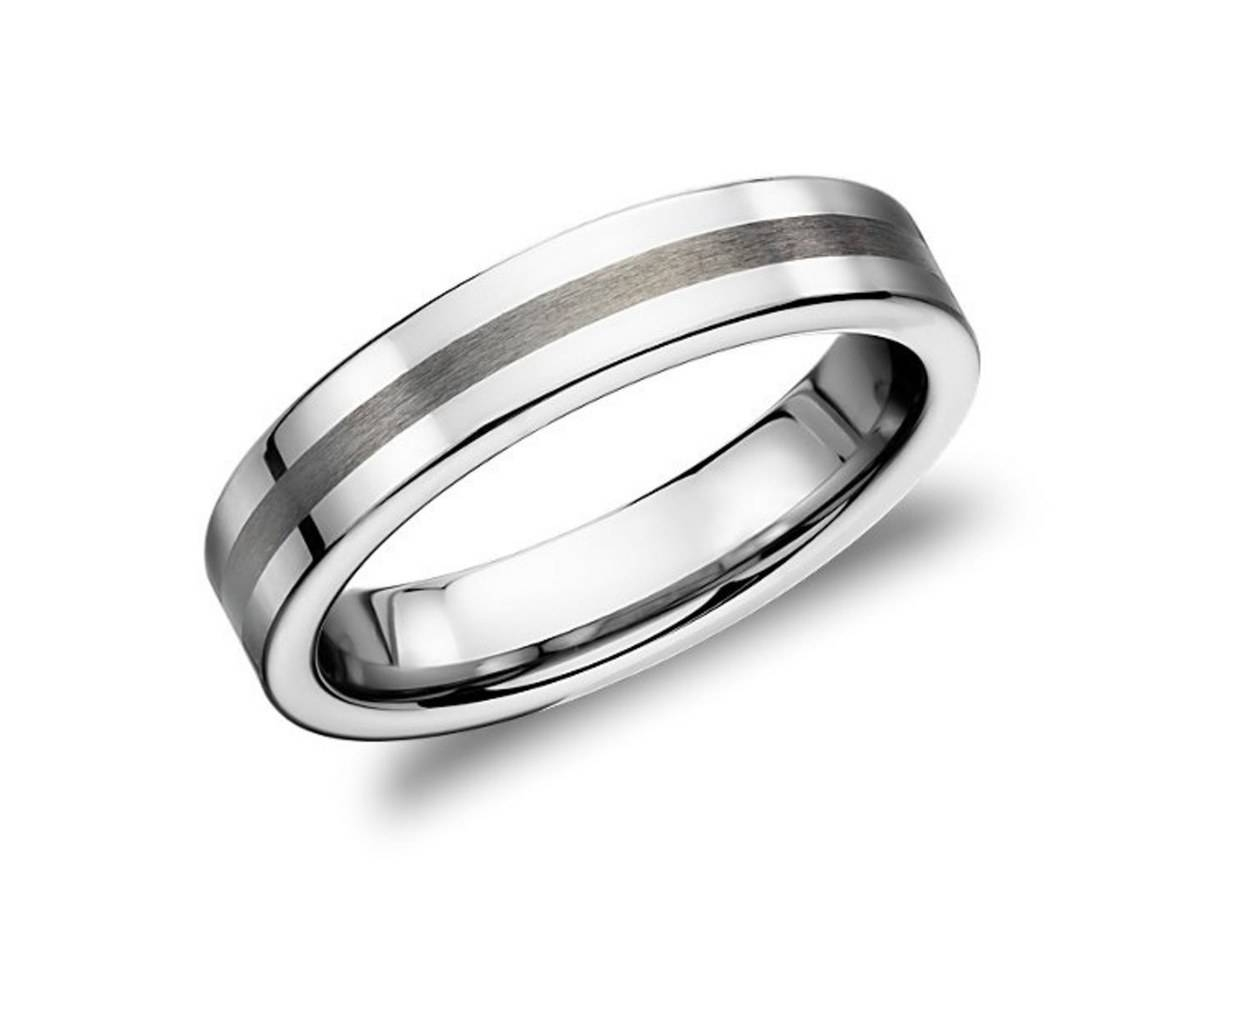 15 Men's Wedding Bands Your Groom Won't Want To Take Off | Glamour With Regard To Guys Wedding Bands (View 1 of 15)